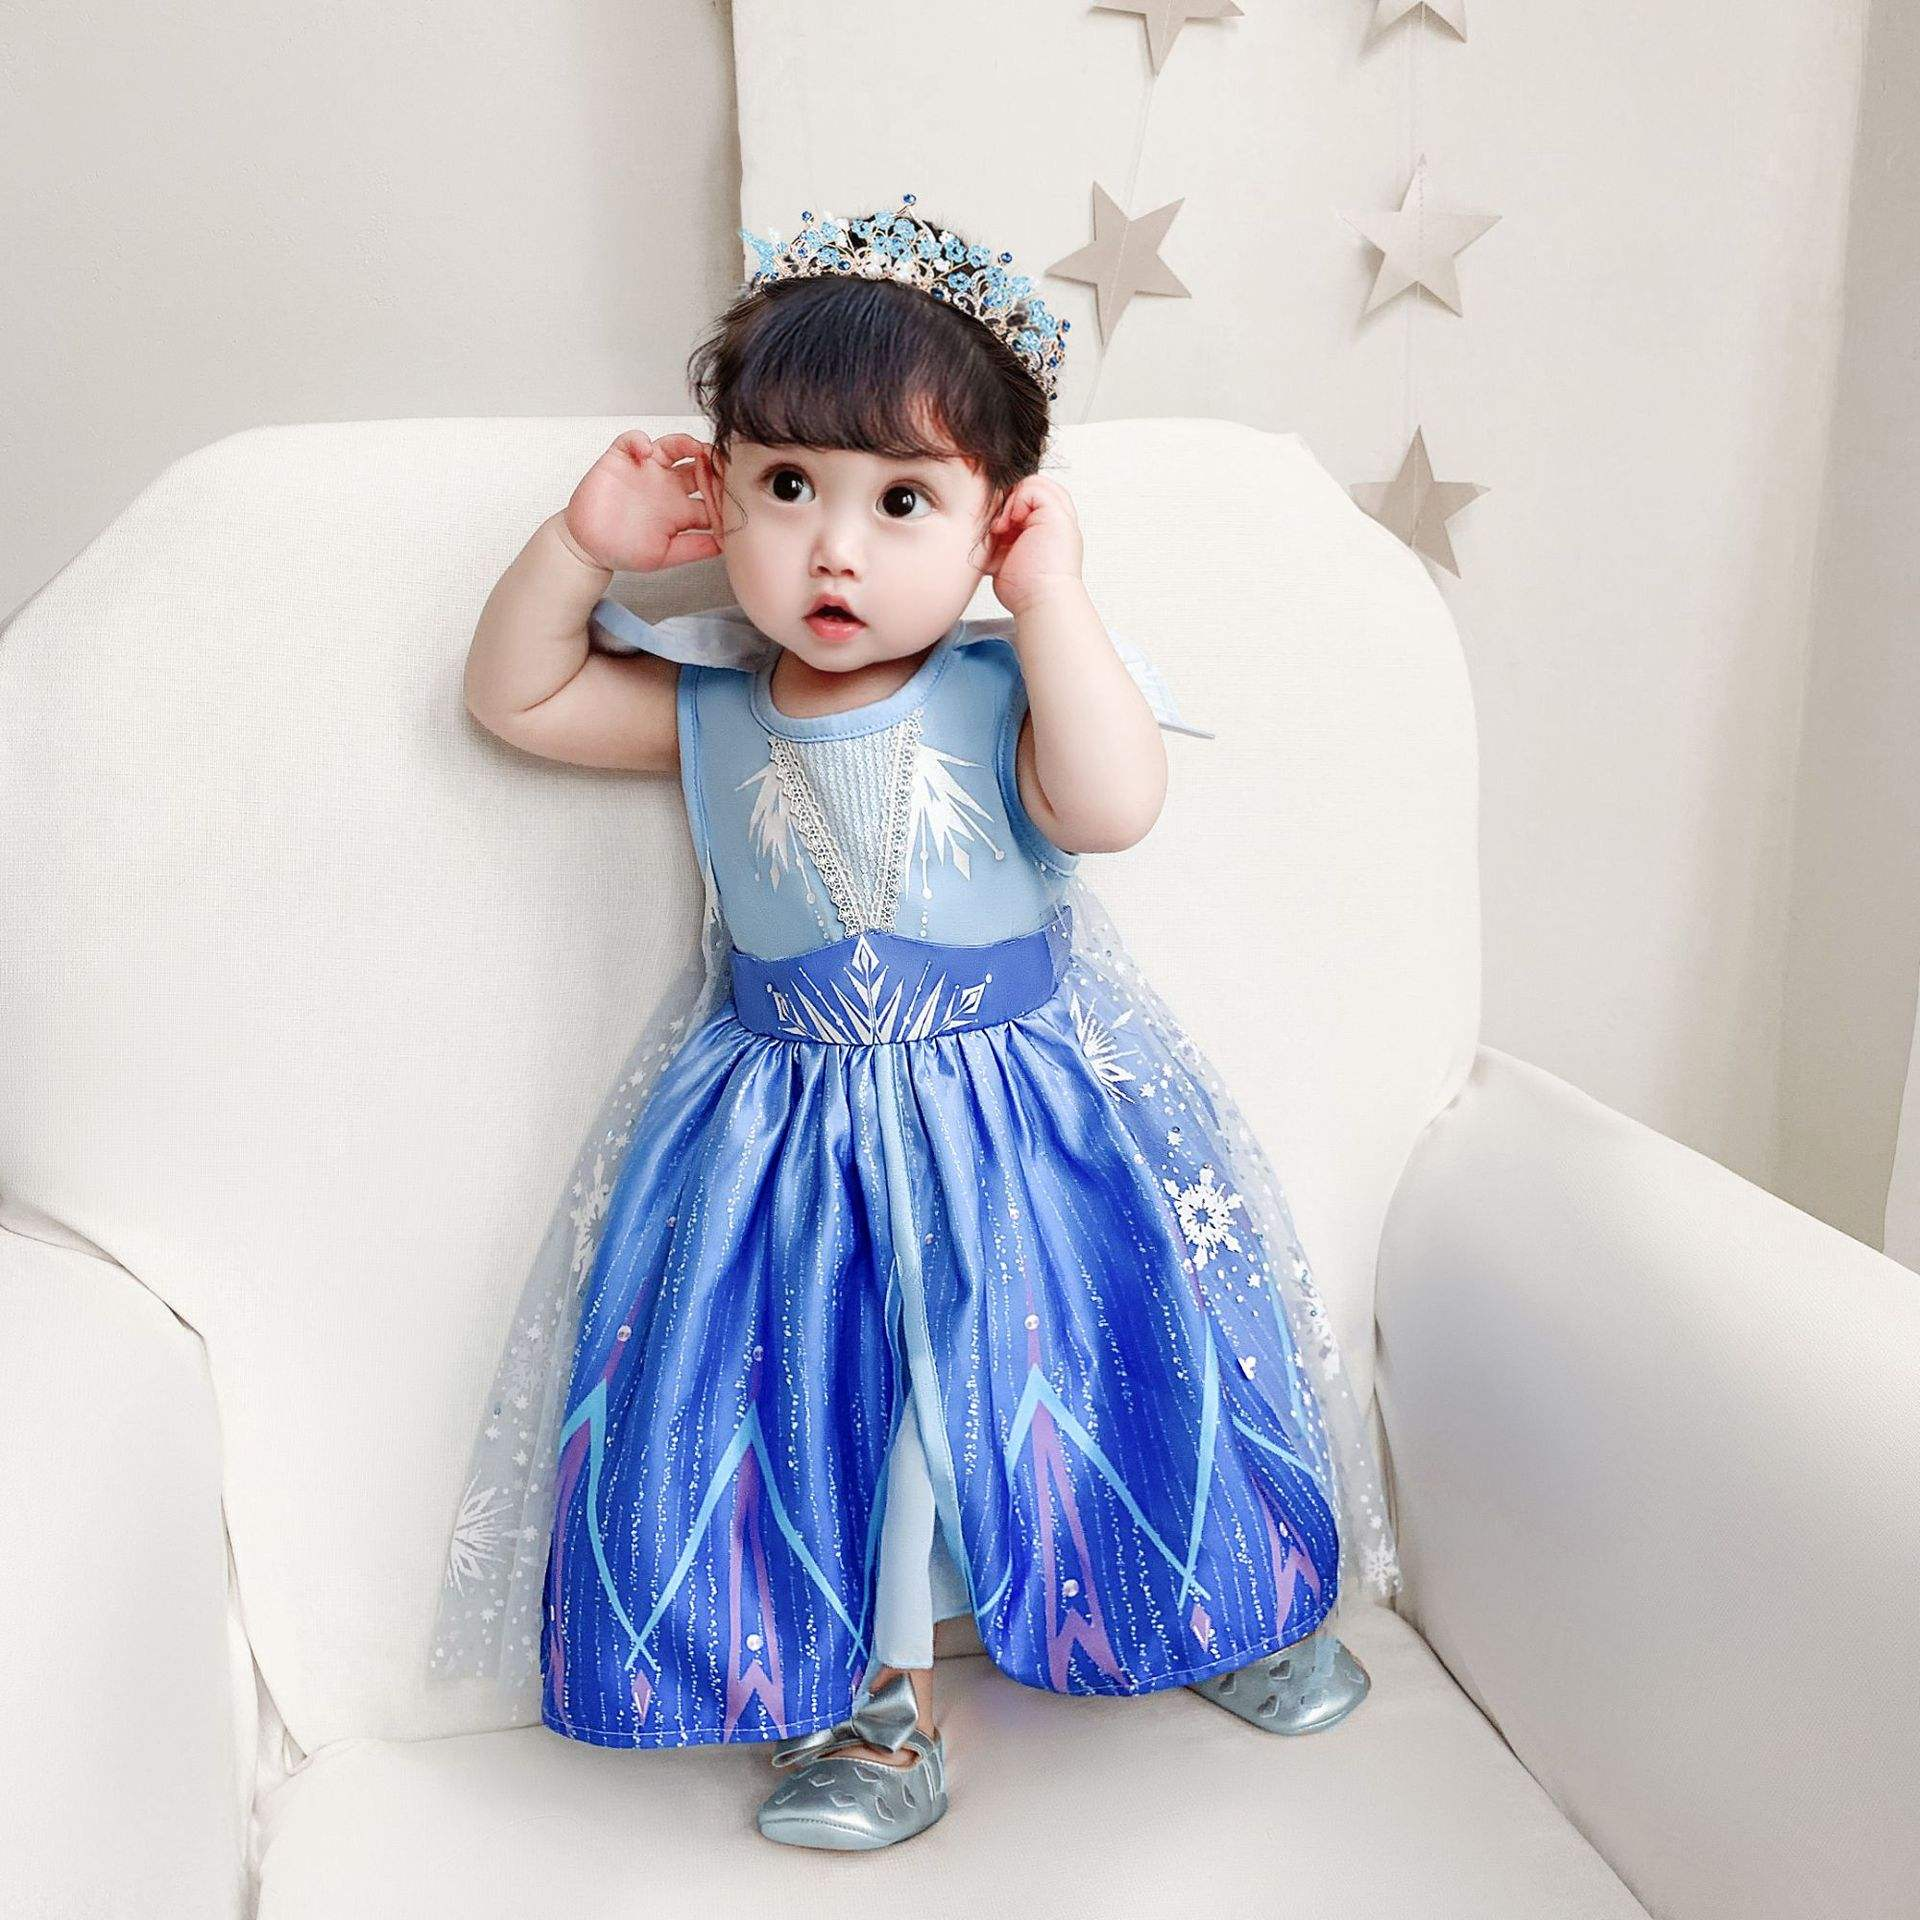 2020 Infant Cosplay Costume Elsa 2 Newborn Baby Girl Holiday Performance Dress BX1730